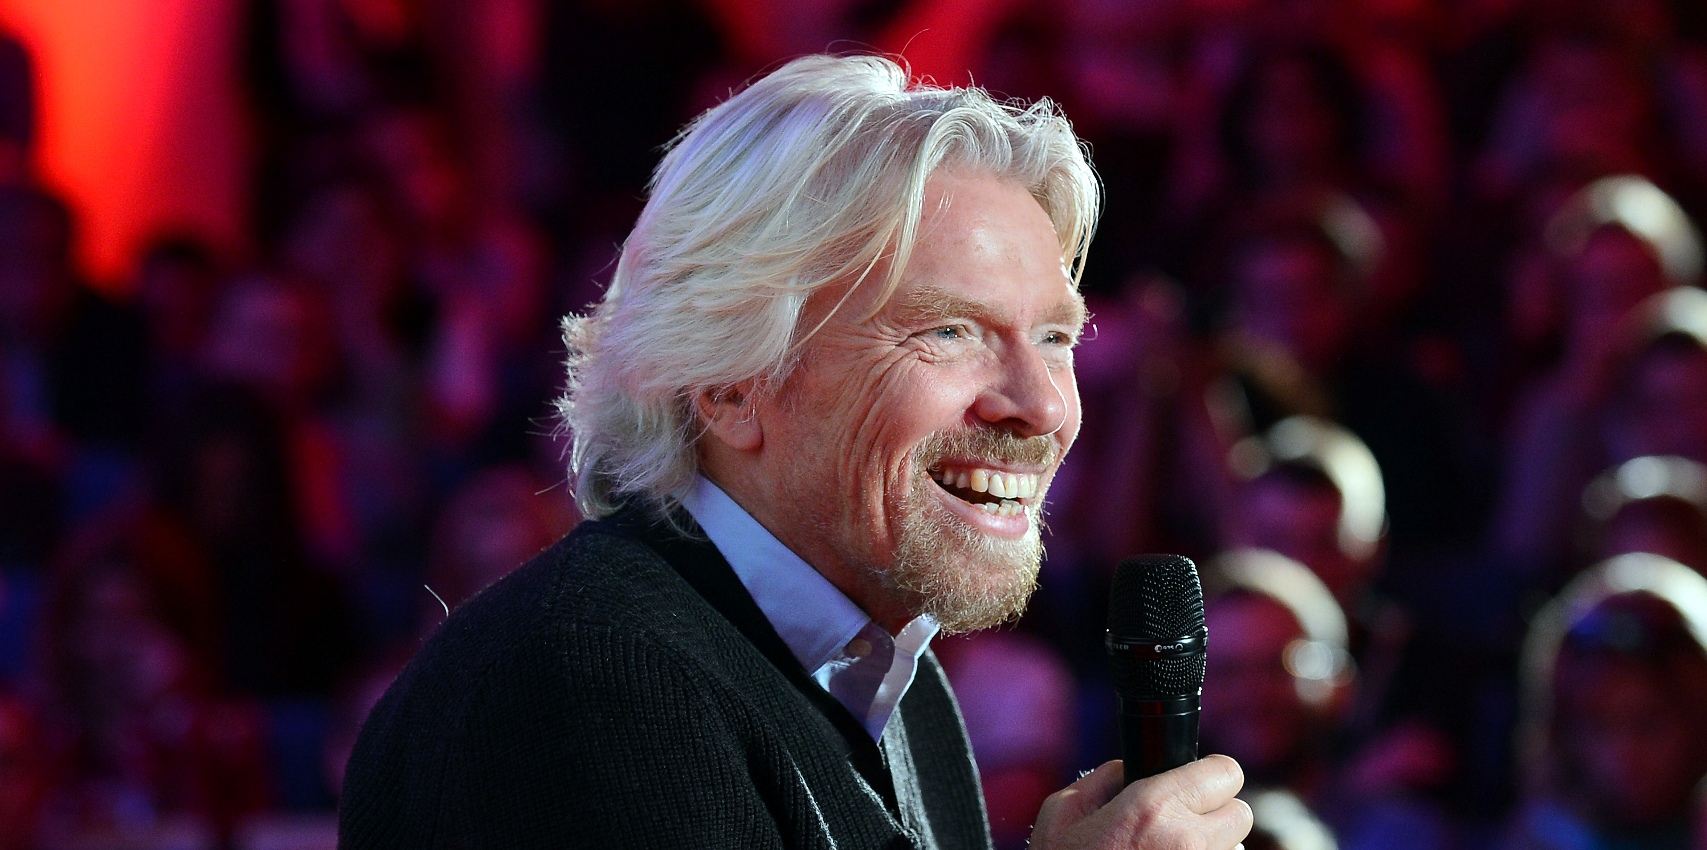 richard branson Sir richard branson said: i have never seen anything like this hurricane necker and the whole area have been completely and utterly devastated.